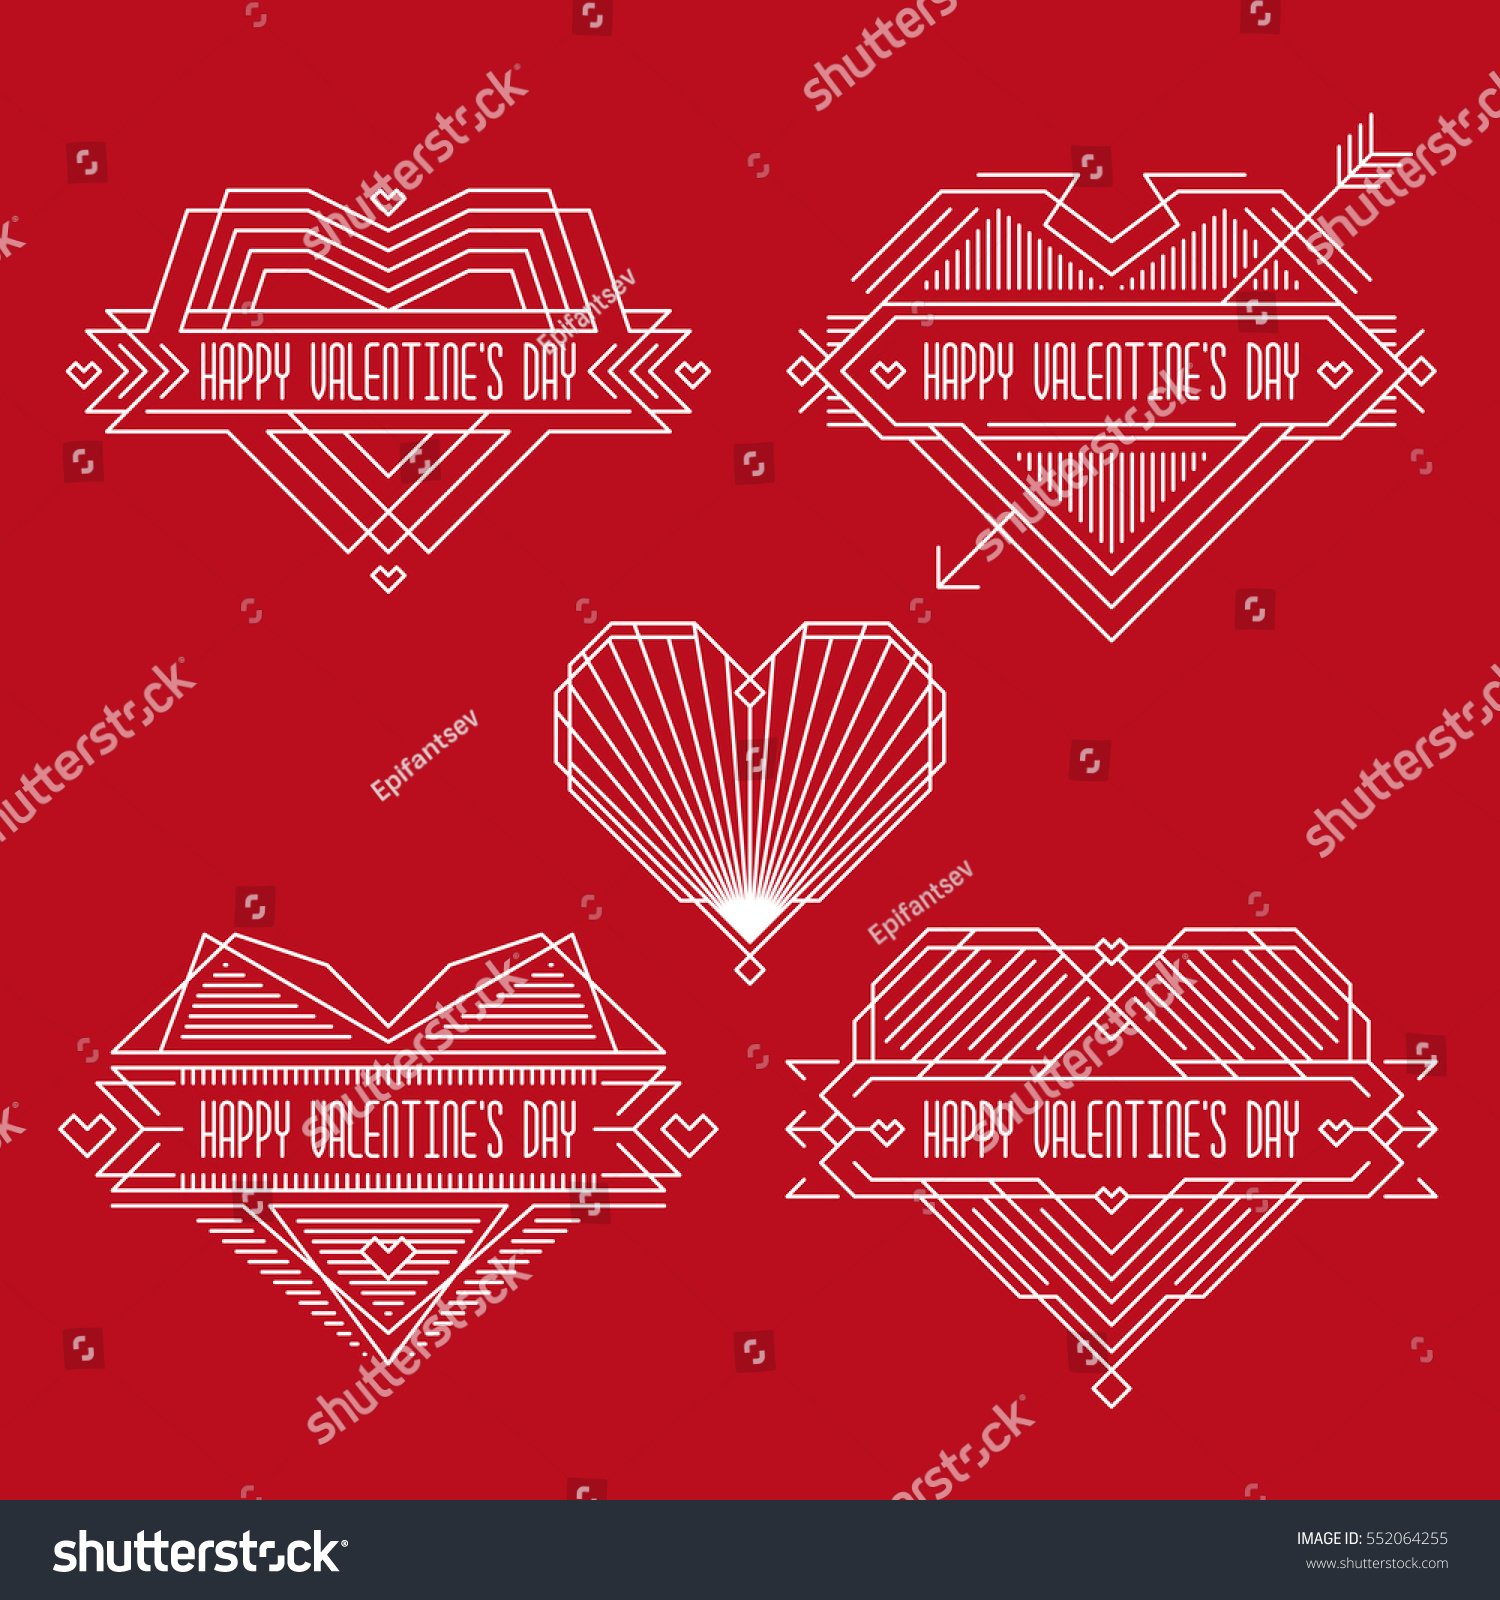 happy valentines day badges frames in outline style valentines banners with hearts - Valentines Picture Frames